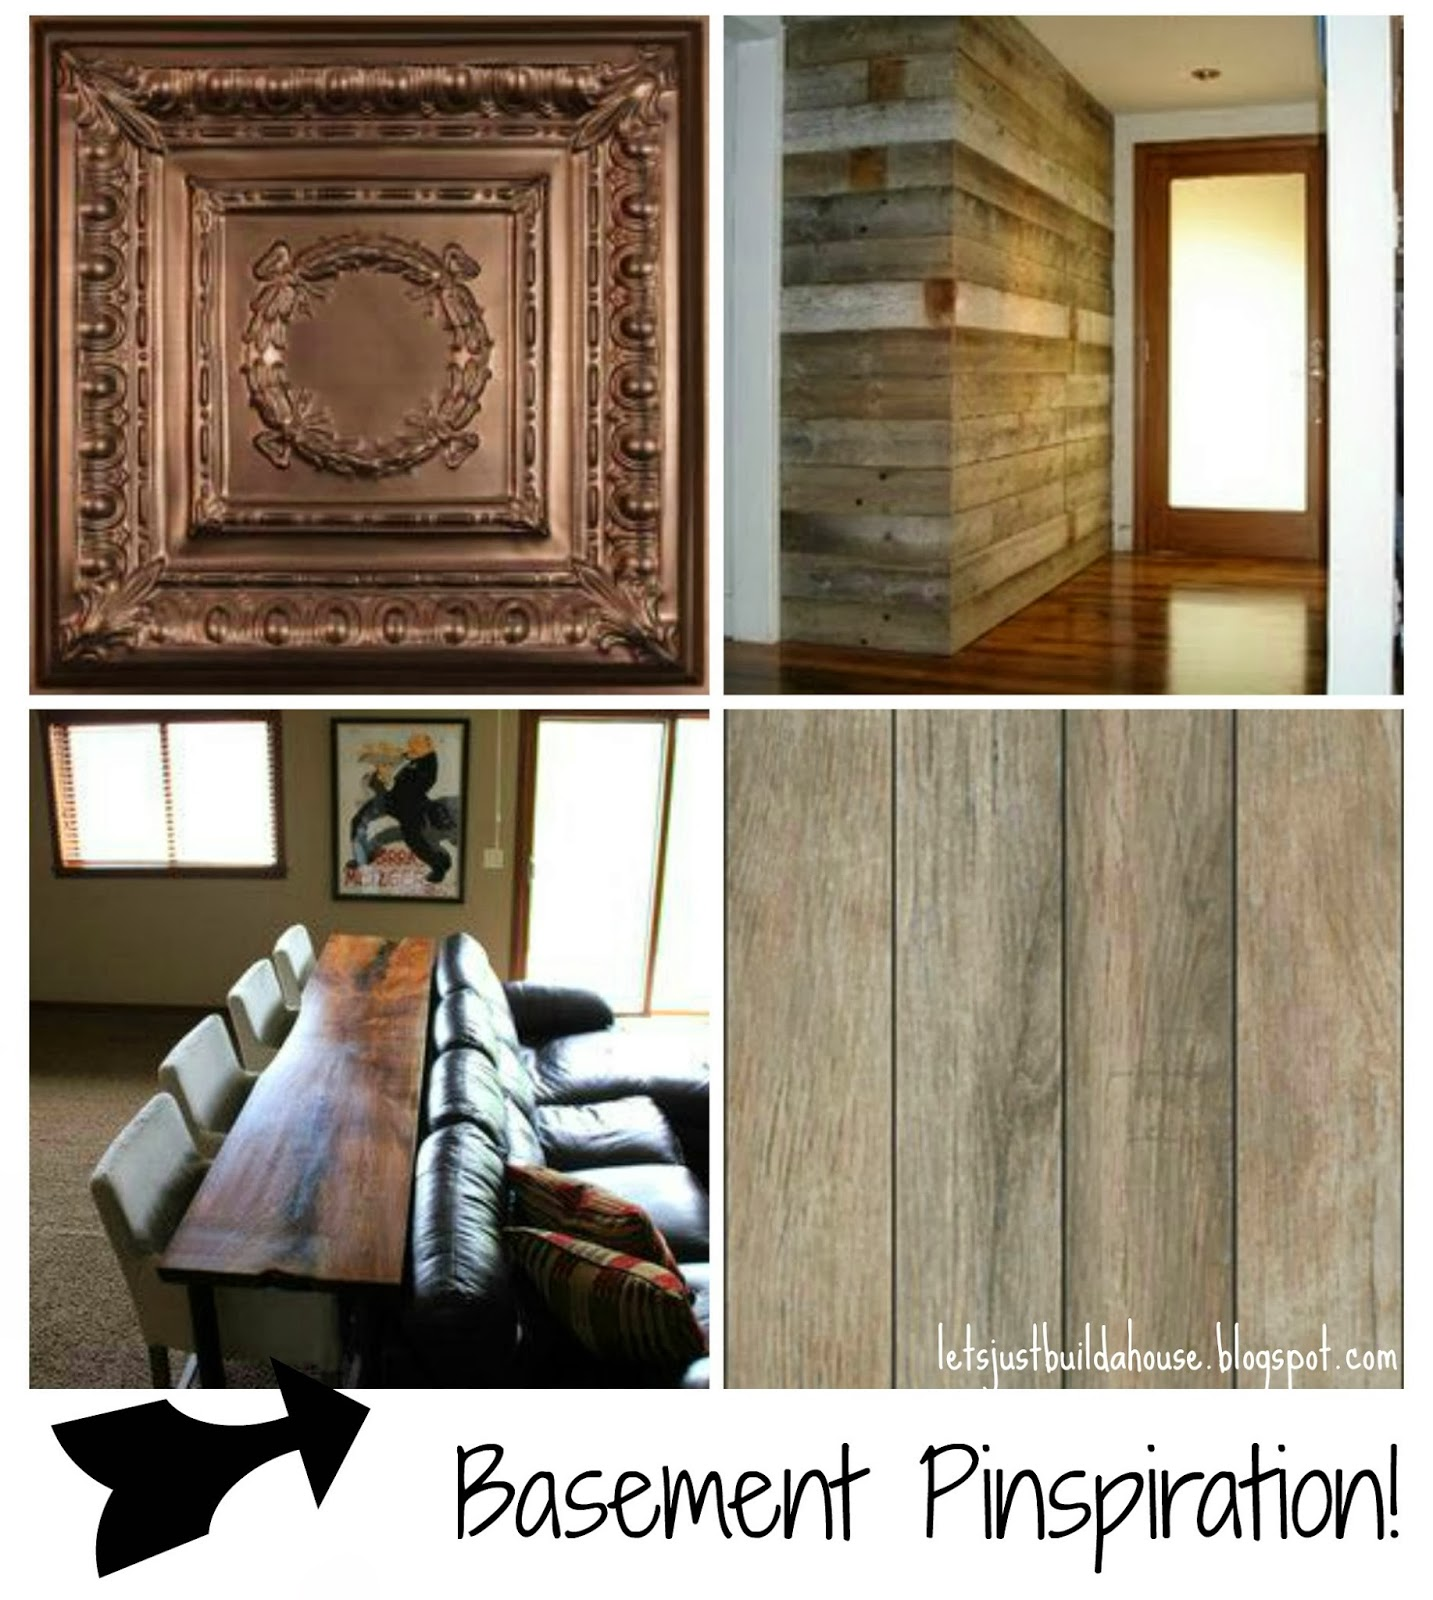 Let's Just Build A House!: Basement Finish And Why It's